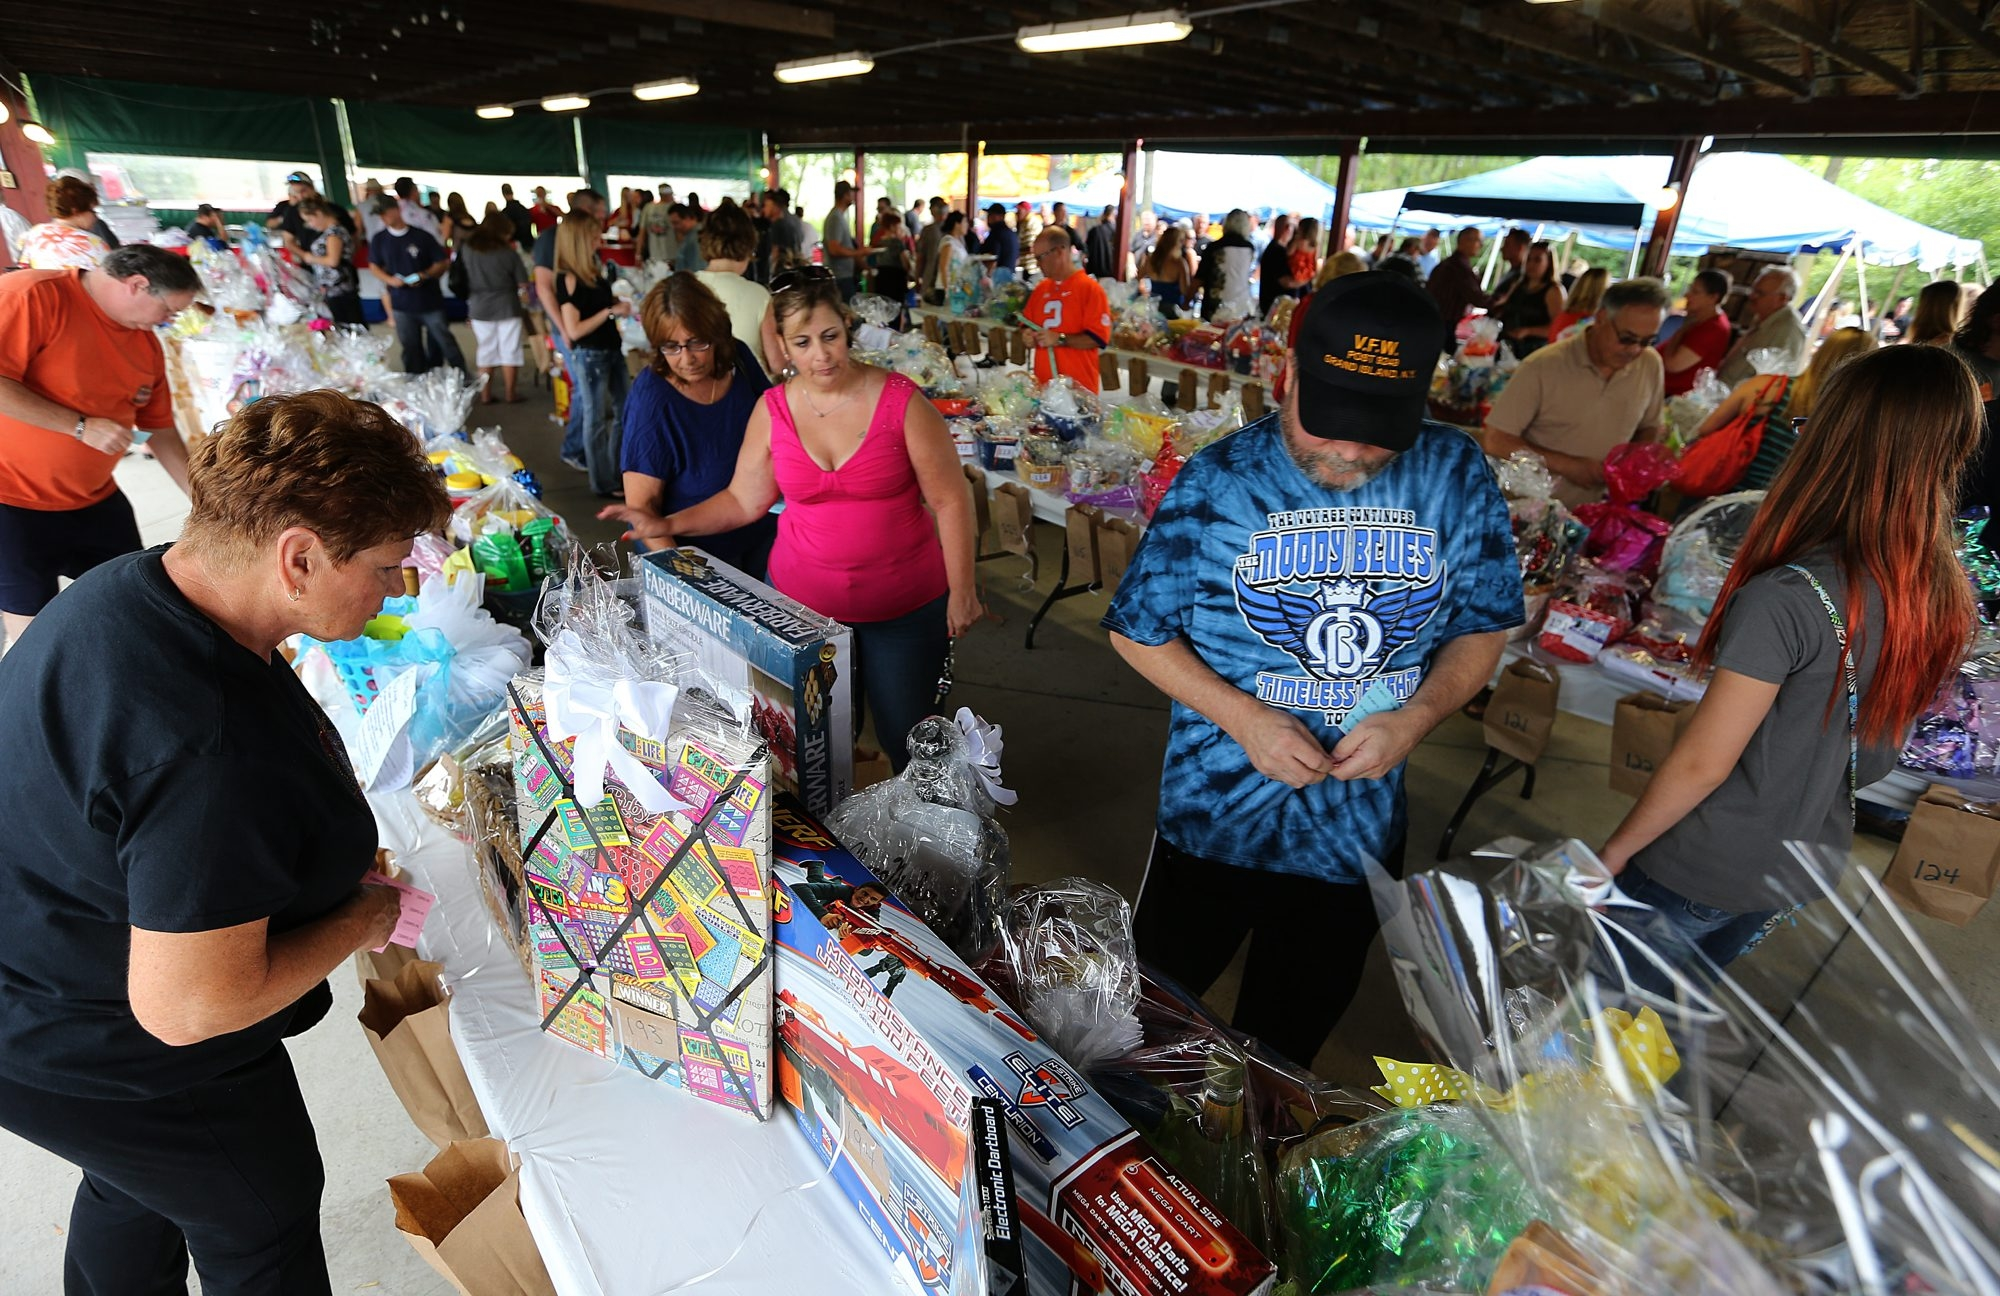 Attendees inspect baskets during a silent auction to benefit the family of William C. Sager Jr., who died at 28 on Thursday nearly three months after the assault incident at Molly's Pub. The event was held at Charles N. DeGlopper Memorial Post 9249, VFW, on Grand Island.